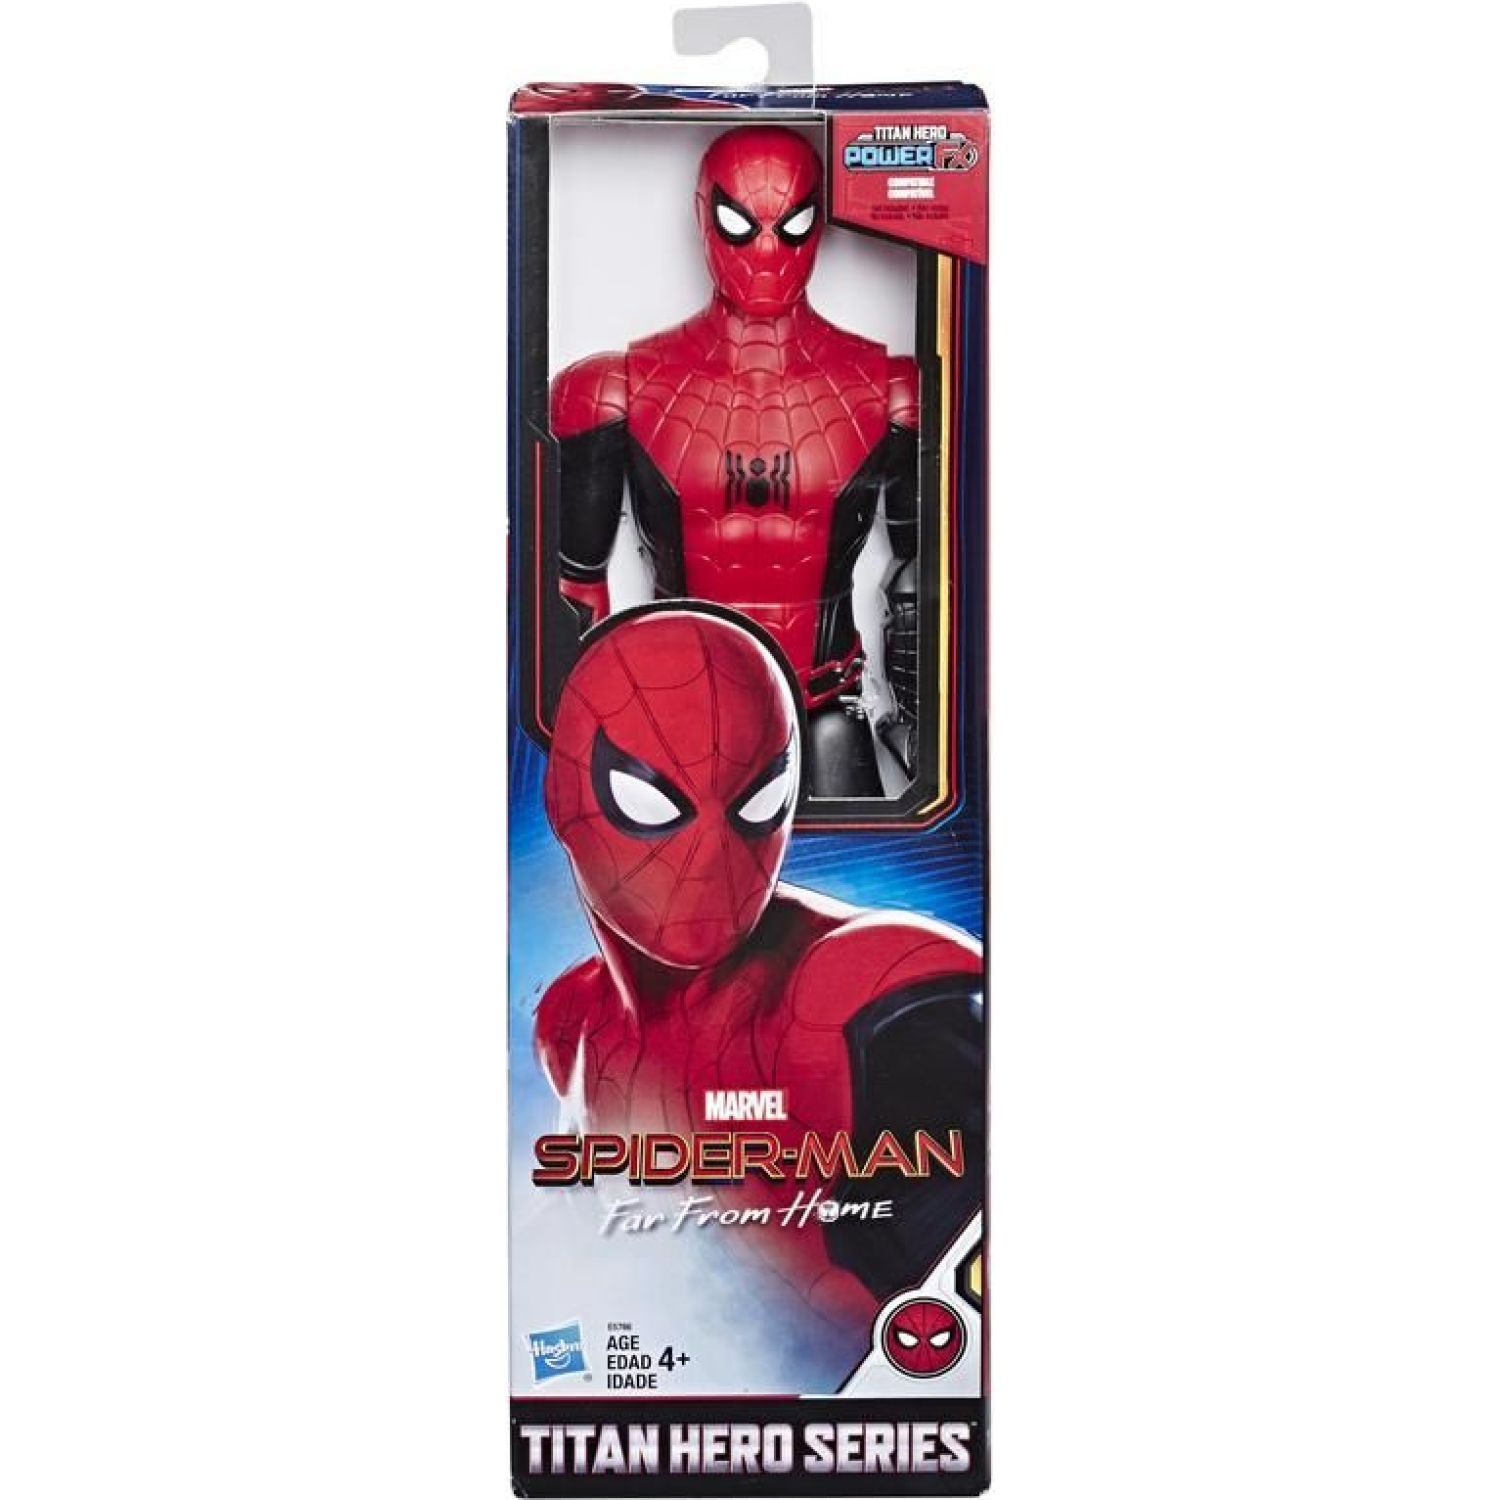 SPIDER-MAN spd movie titan hero chandler 3 Varios Figuras de acción